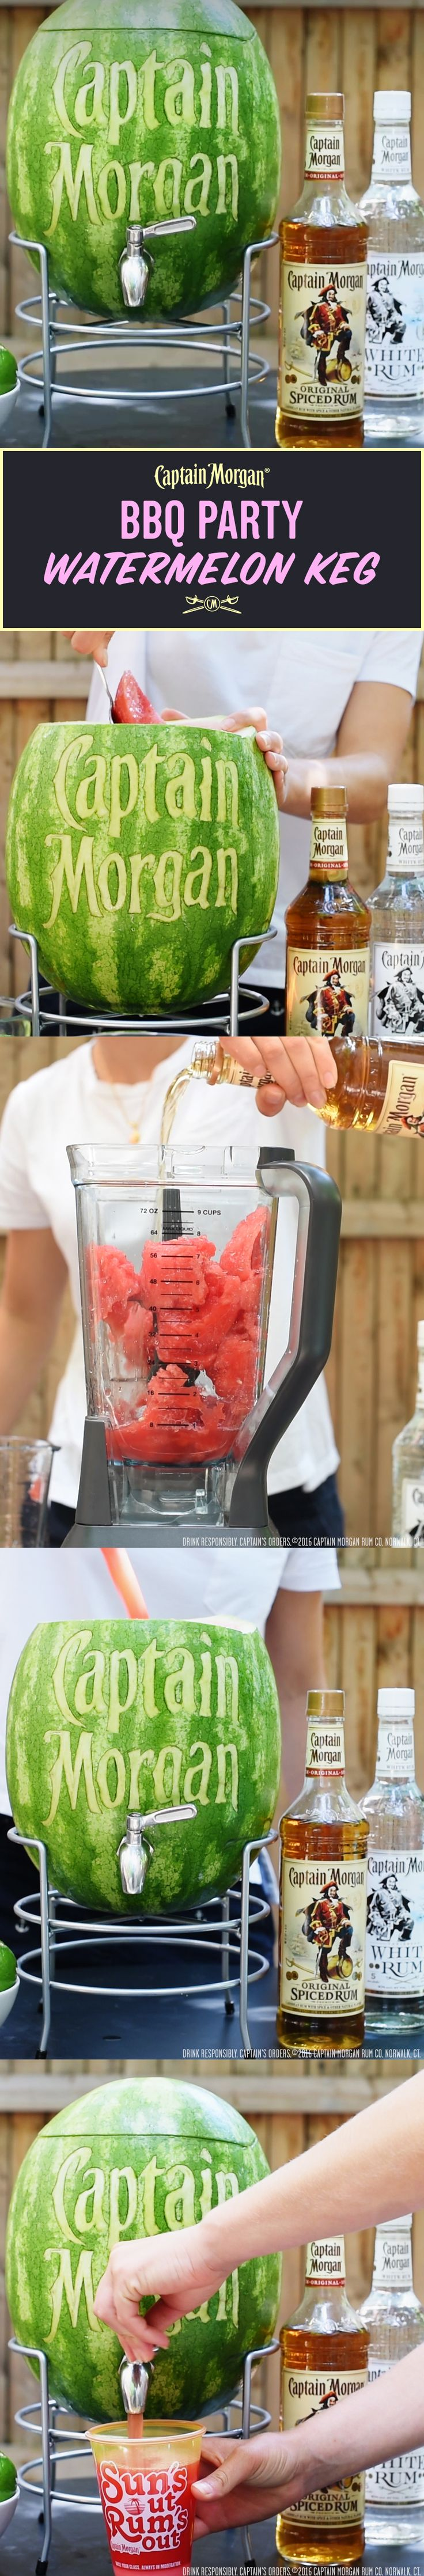 Captain's Watermelon Keg, the perfect BBQ accessory. Recipe: 1.5 oz Captain Morgan Original Spiced Rum 3 oz Watermelon juice 0.5 oz lime juice 0.5 oz sugar syrup  Get more rum recipes at https://us.captainmorgan.com/rum-cocktails/?utm_source=pinterest&utm_medium=social&utm_term=bbq&utm_content=long_island&utm_campaign=recipe